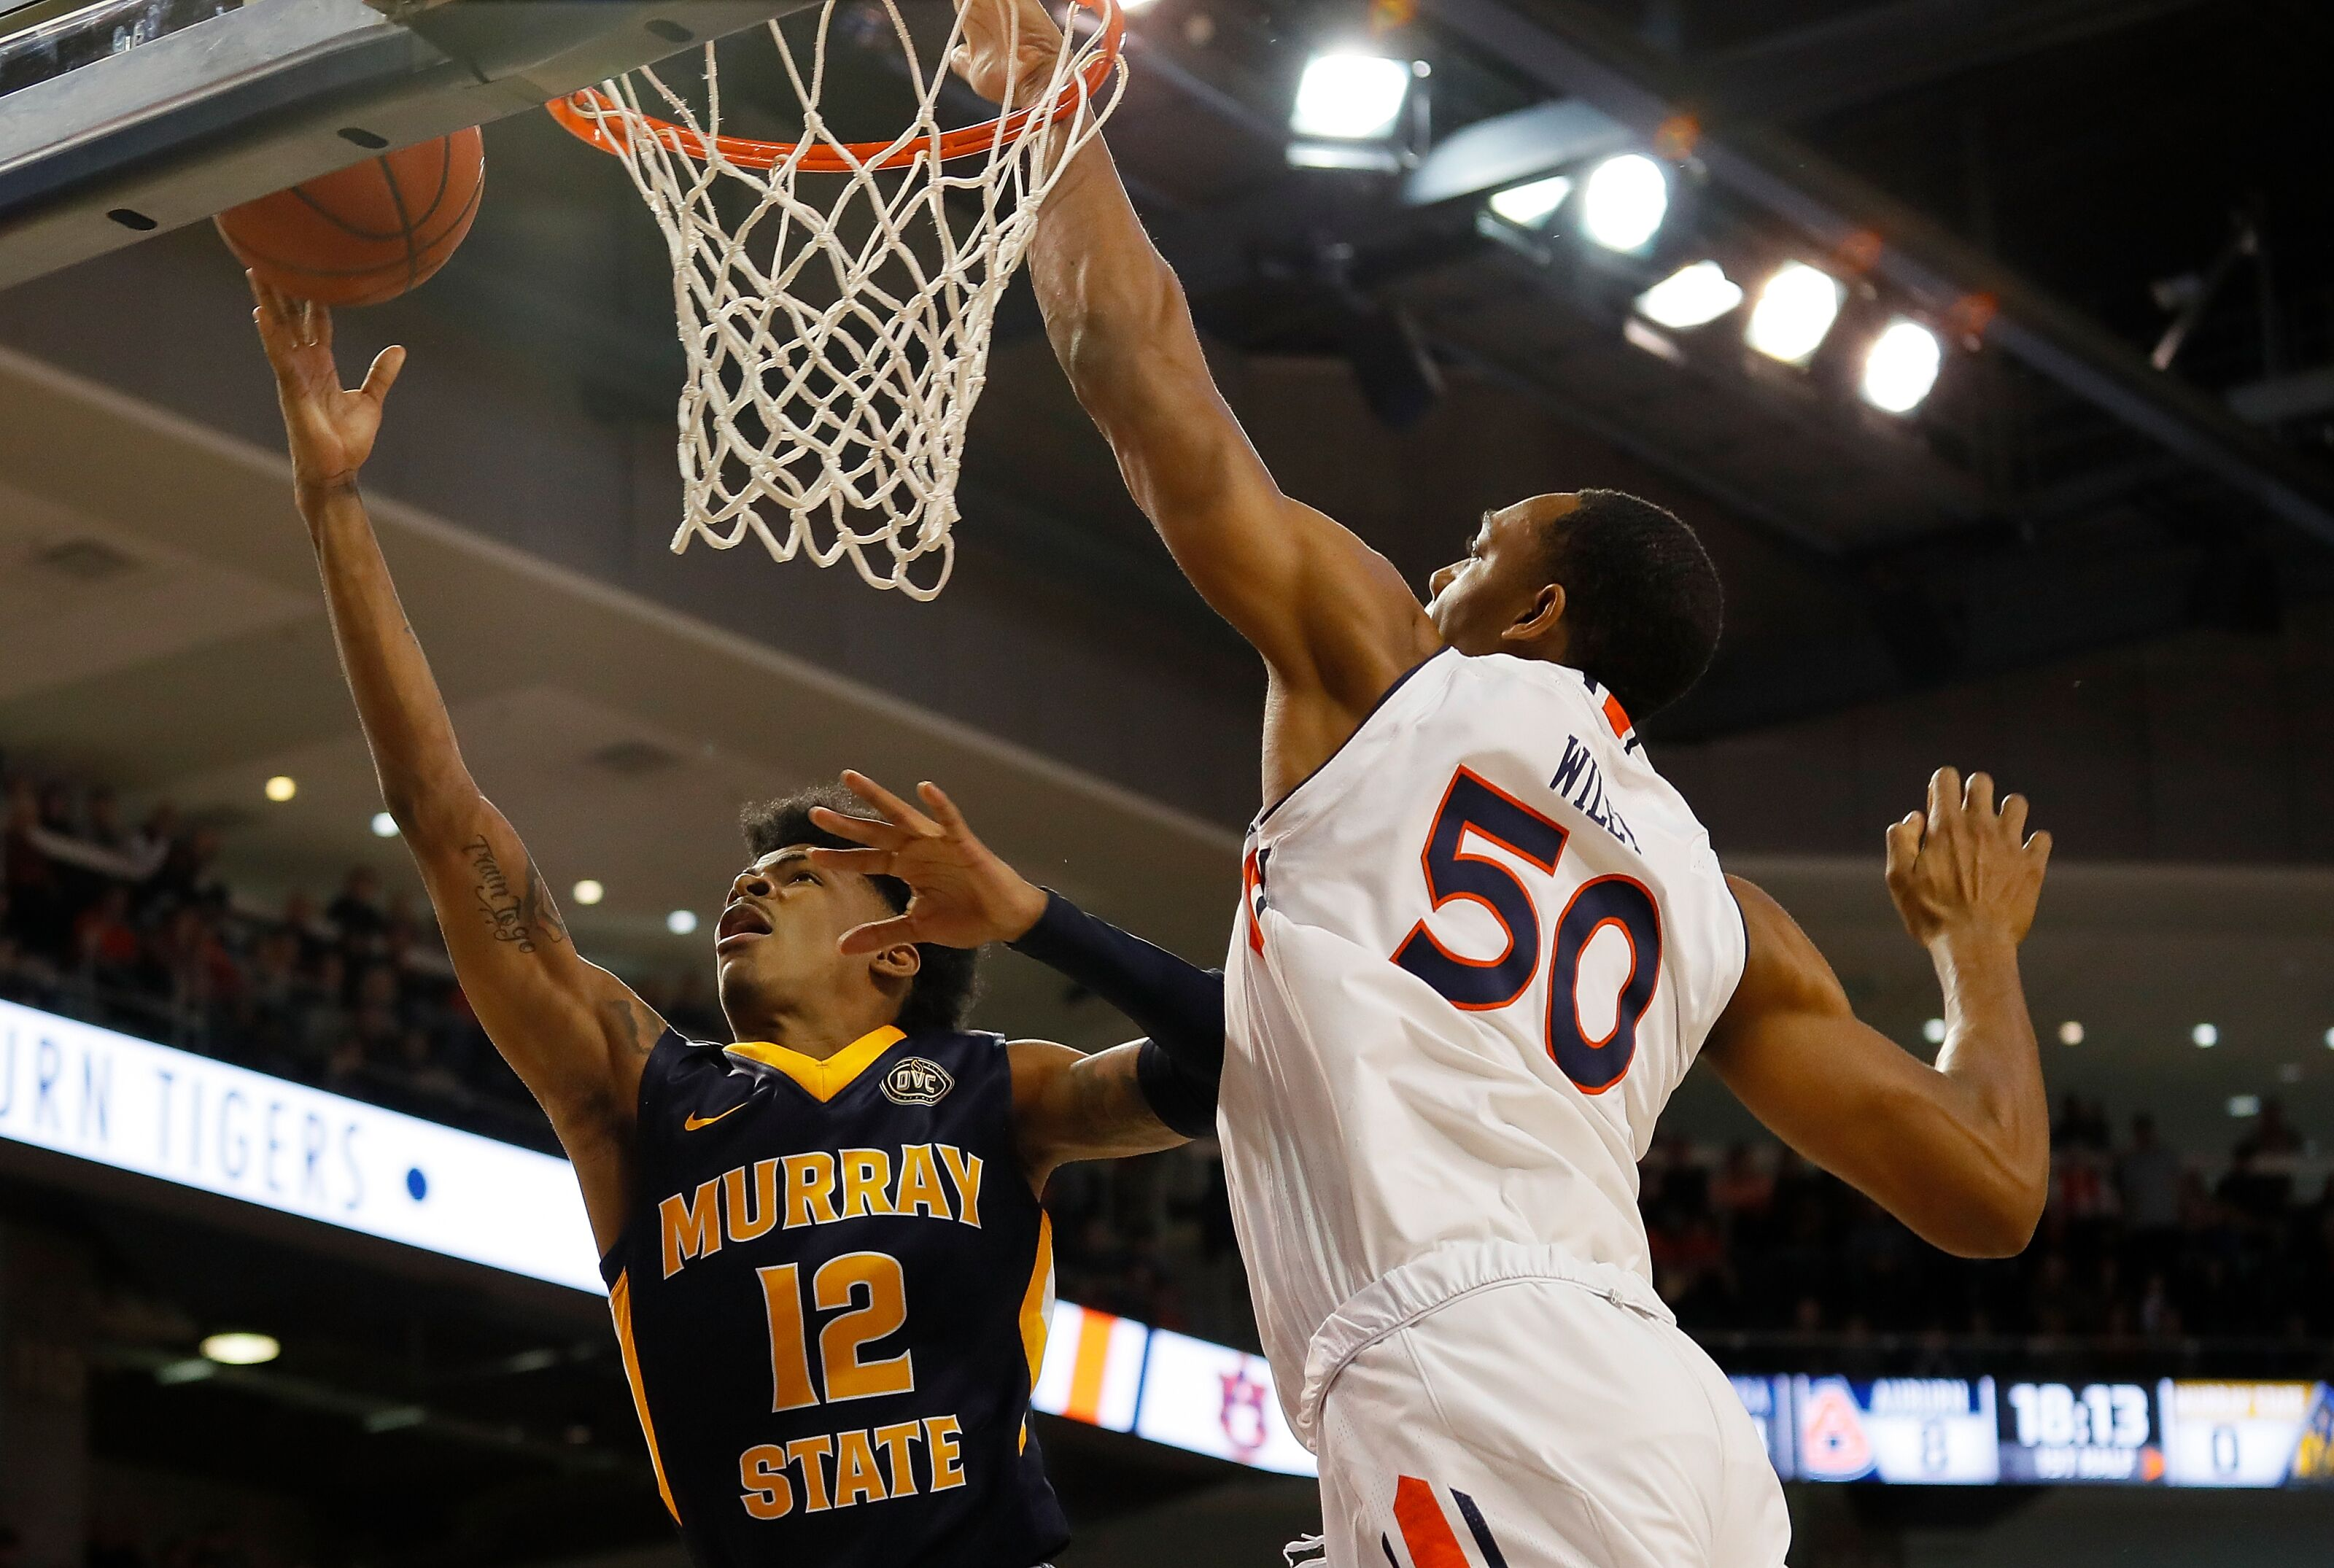 AUBURN, ALABAMA - DECEMBER 22: Ja Morant #12 of the Murray State Racers attacks the basket against Austin Wiley #50 of the Auburn Tigers at Auburn Arena on December 22, 2018 in Auburn, Alabama. (Photo by Kevin C. Cox/Getty Images)